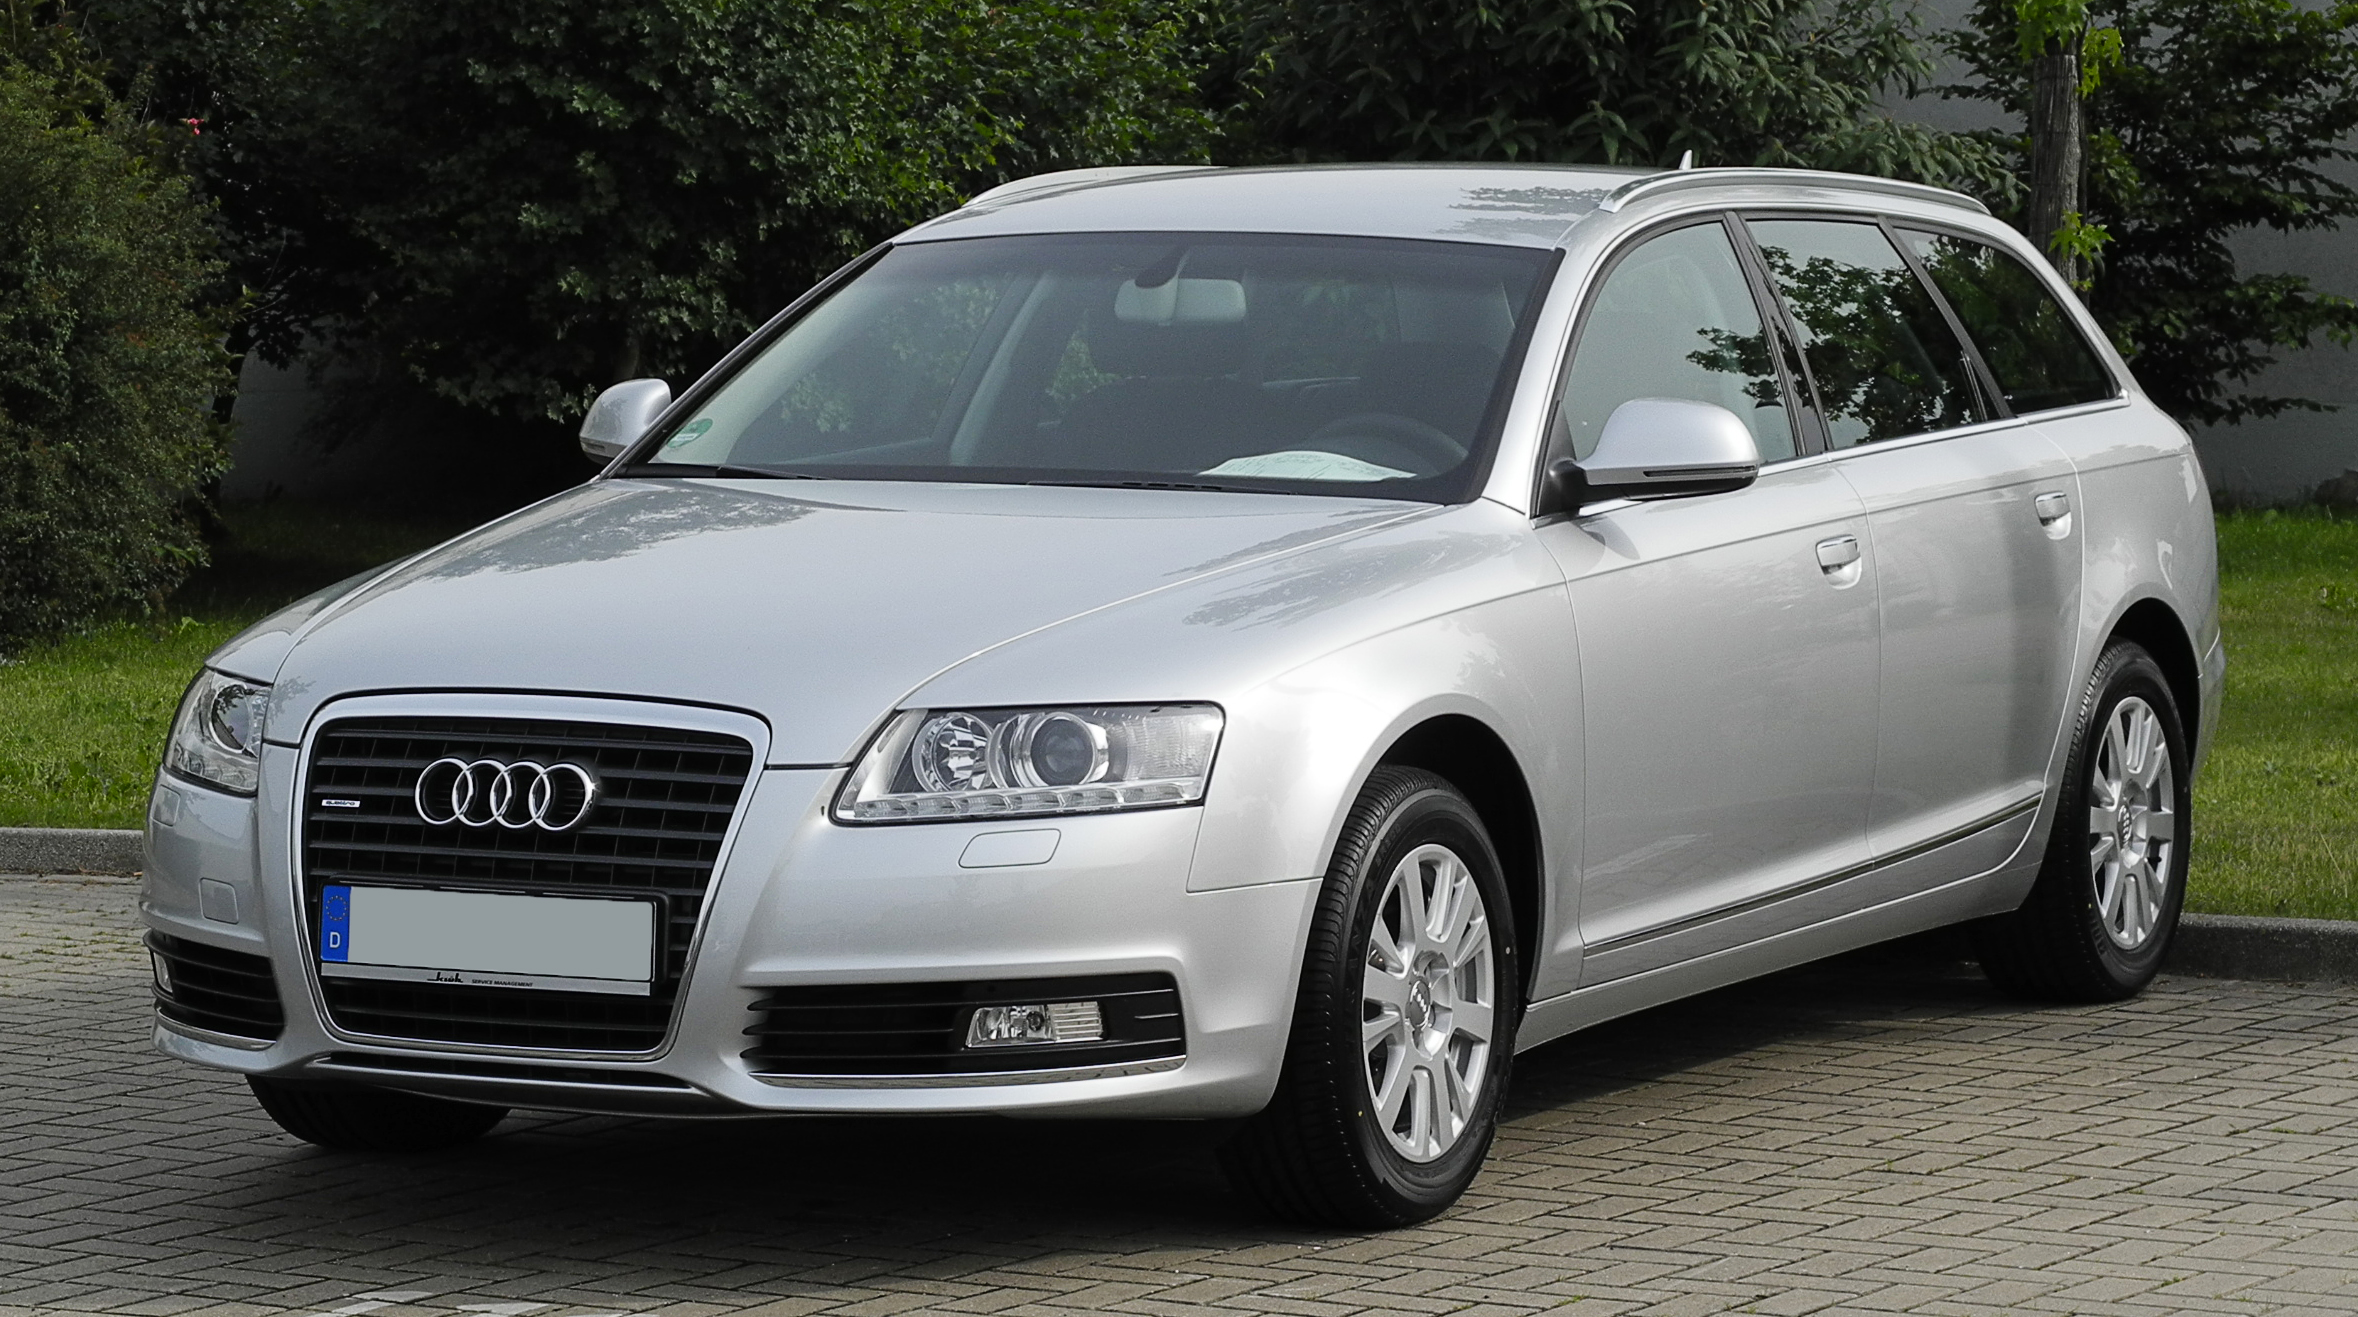 2011 audi s6 avant iii pictures information and specs. Black Bedroom Furniture Sets. Home Design Ideas